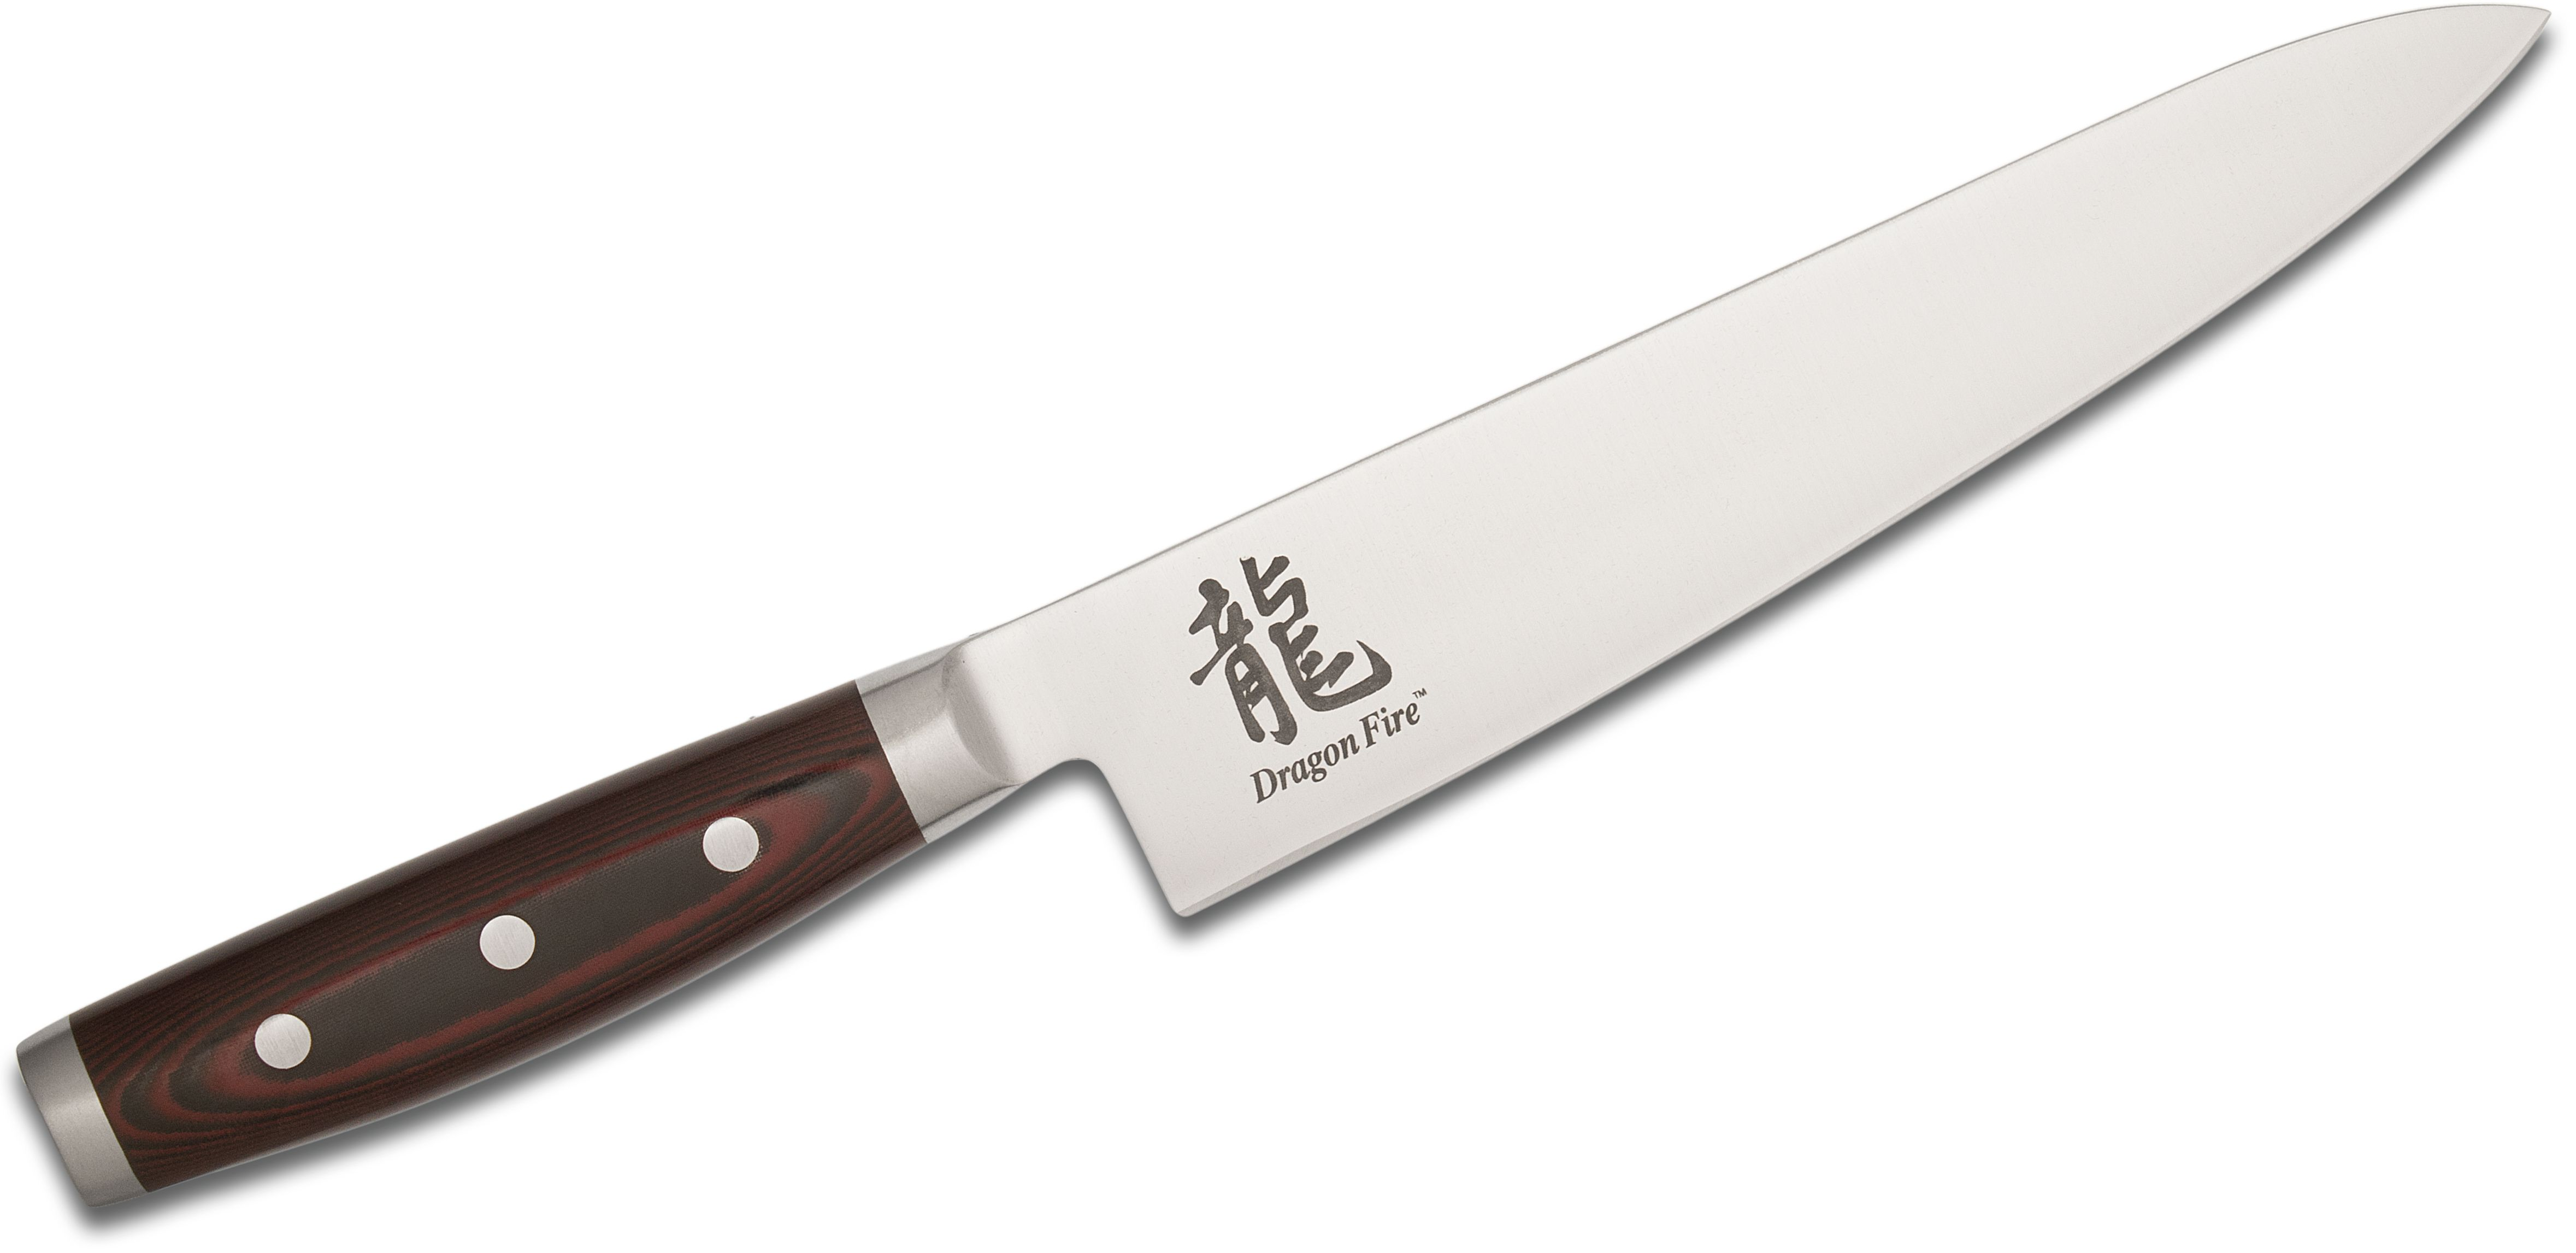 Dragon Fire by Yaxell Japan 8.5 inch Chef's Knife, Red/Black Micarta Handles